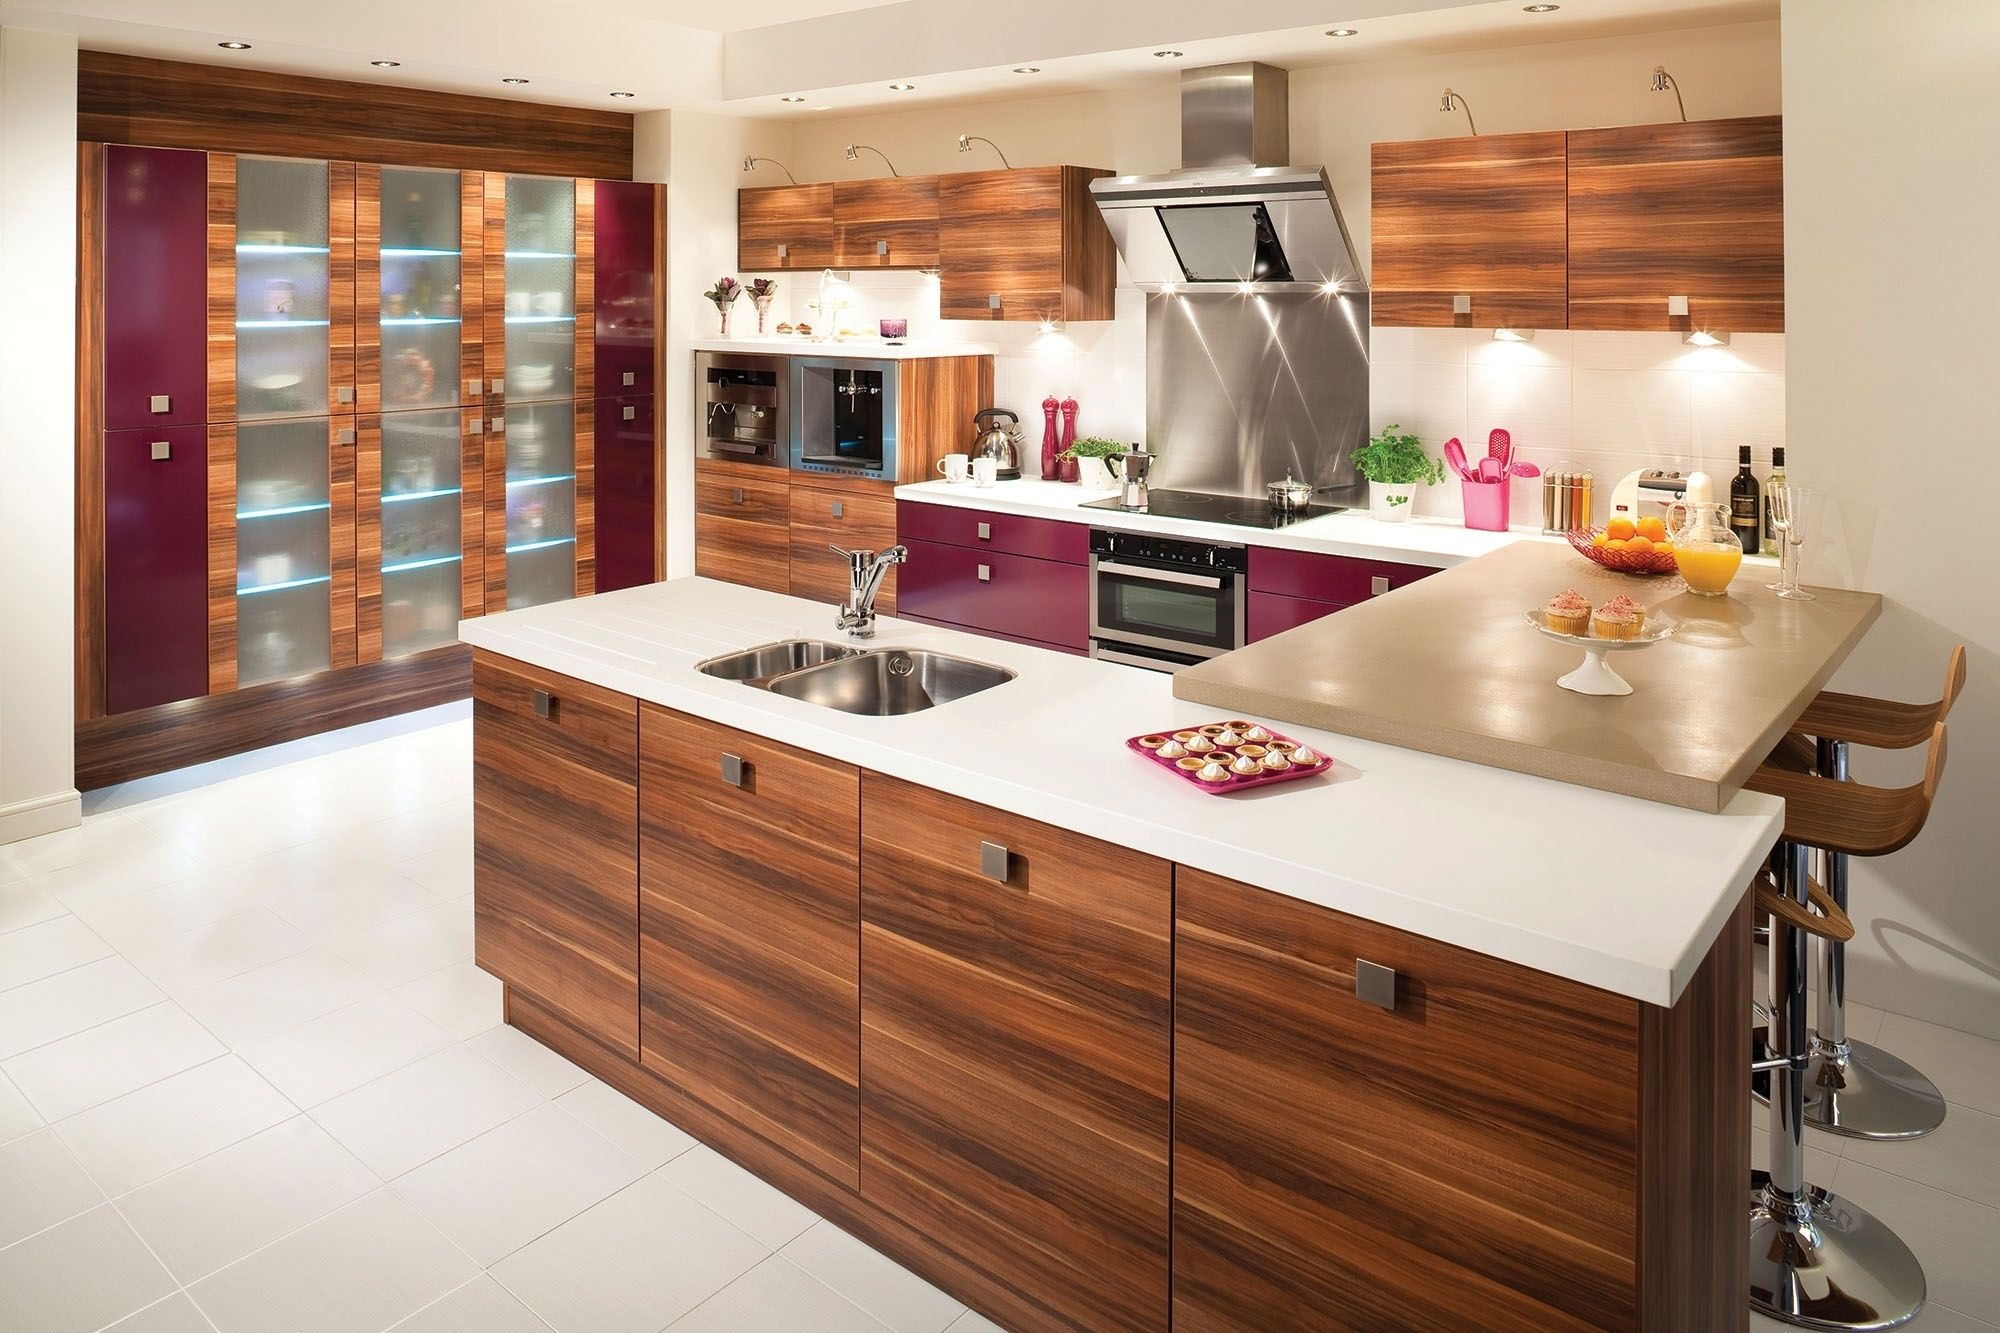 Simple Kitchen Designs For Small Spaces Galley Hit World House Design Splendid  Ideas With